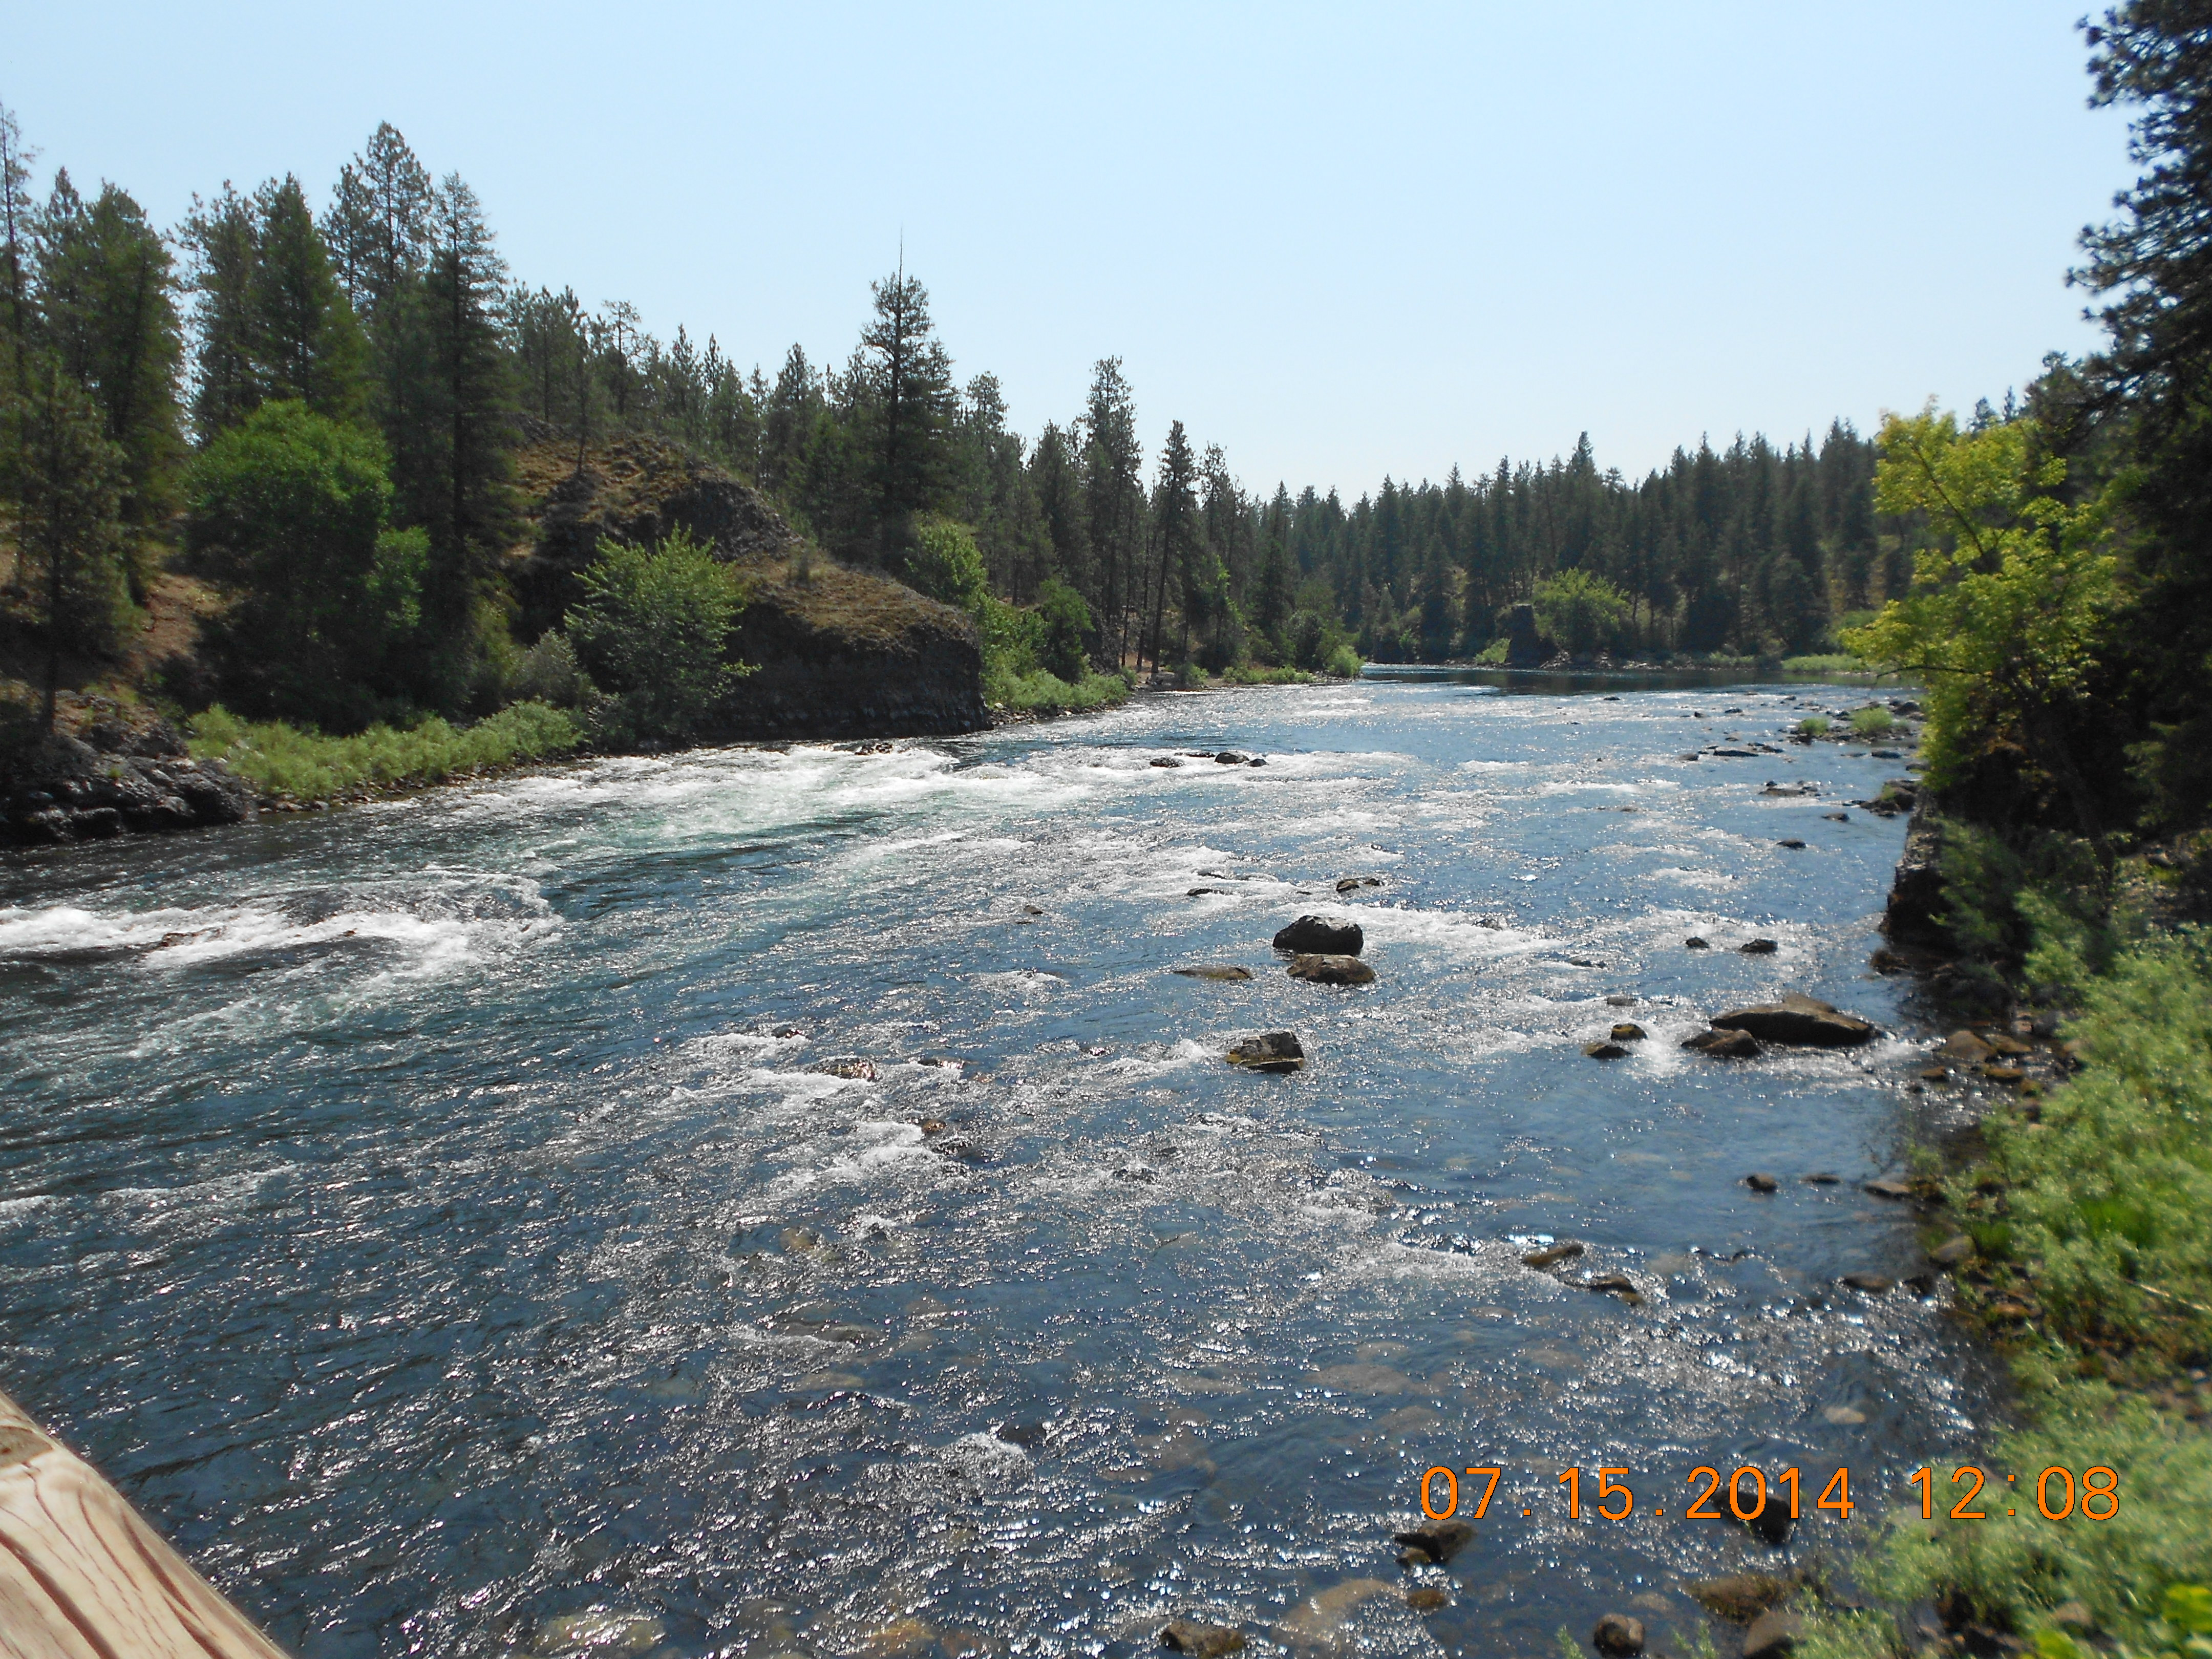 Spokane River at 2500 cfs  - Photo by John Osborn, taken at Riverside State Park